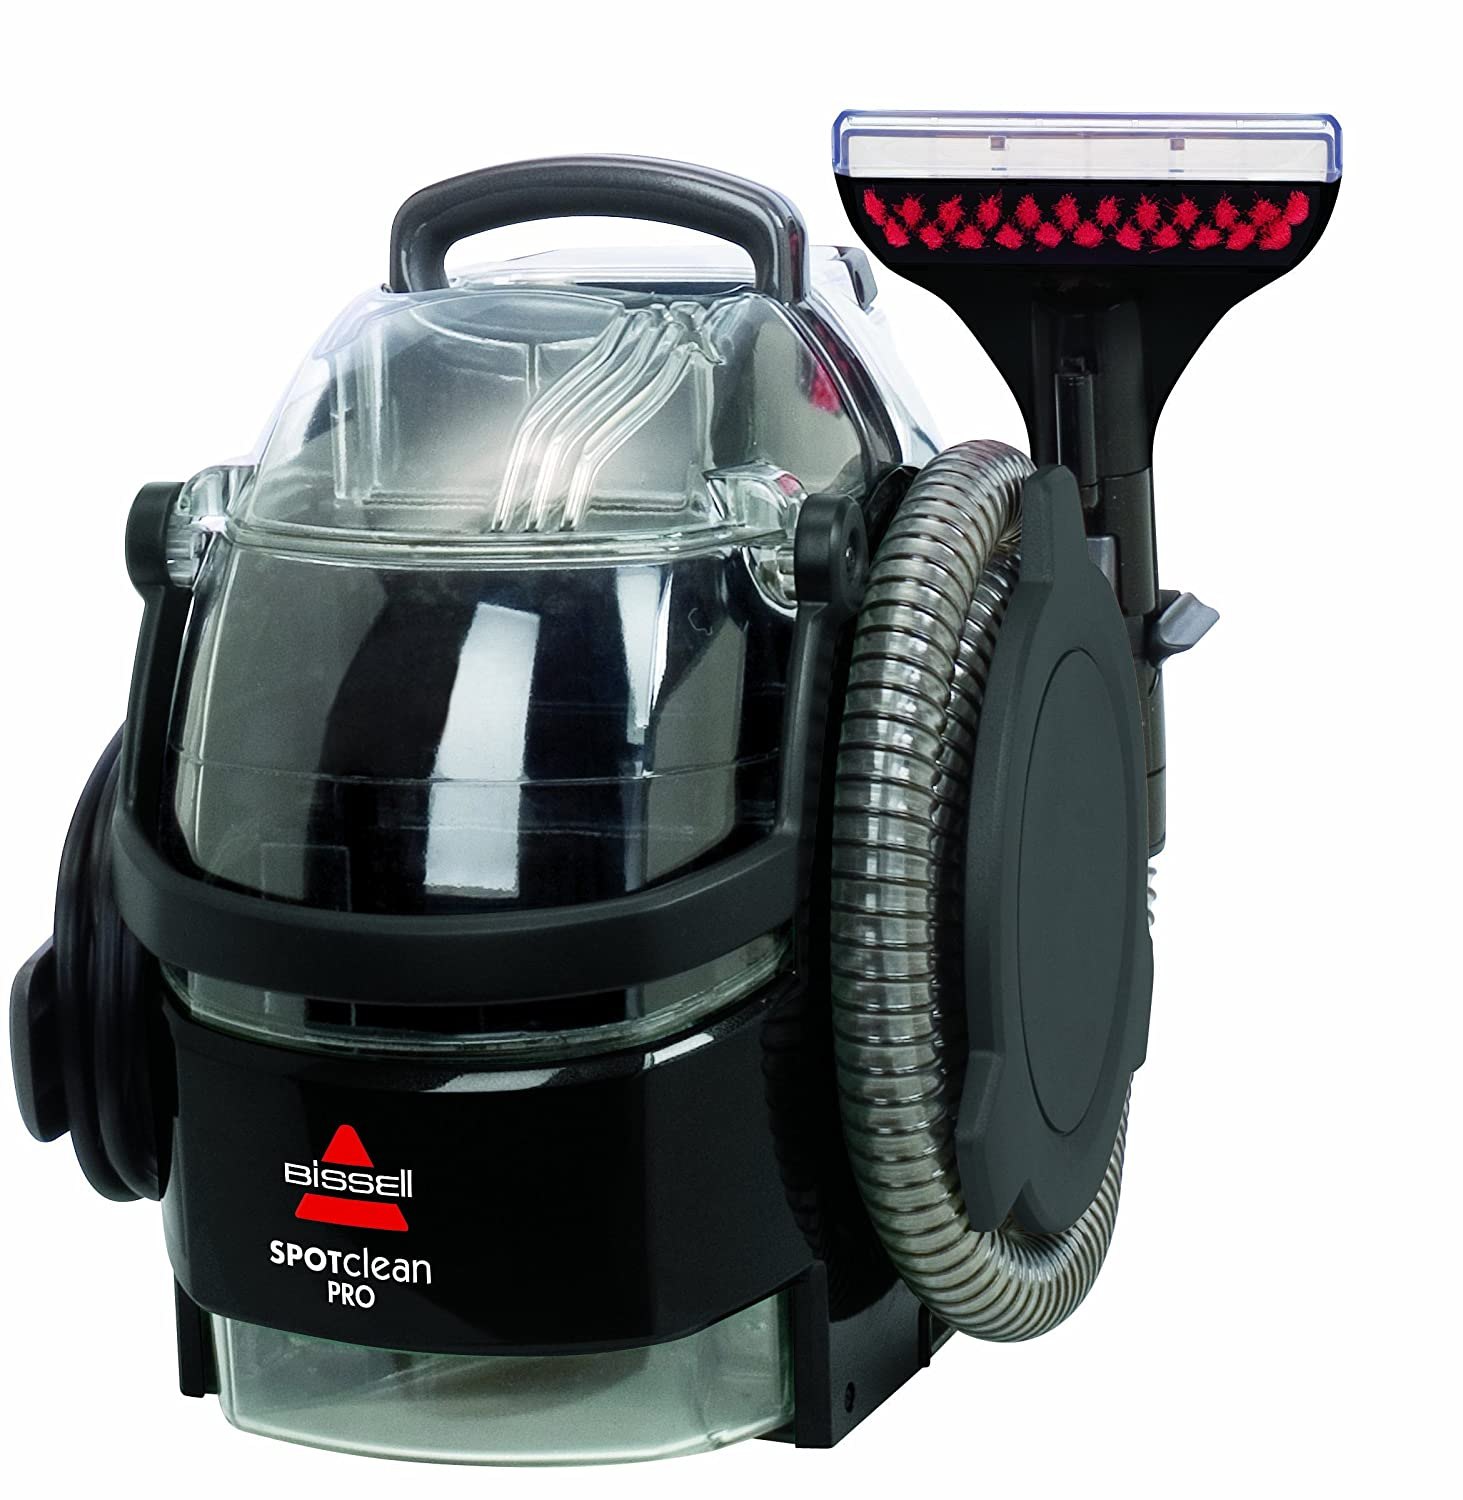 Bissell SpotClean Pro Portable Carpet Cleaner 3624